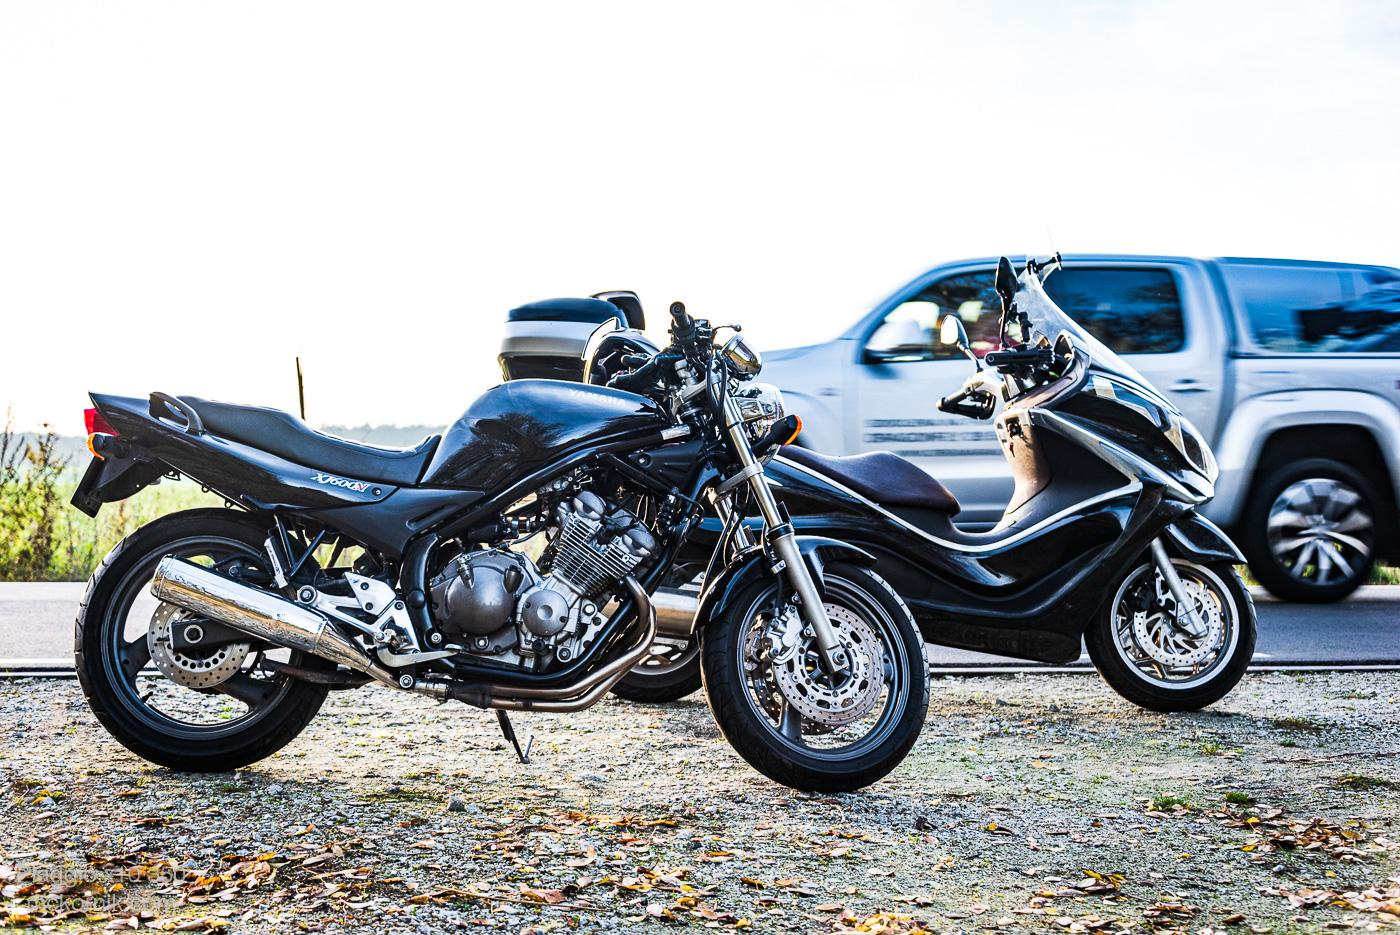 Autumn scooter / motocycle ride #piaggiox10, #piaggiox10350 and #yamahaxj600n #calimotour